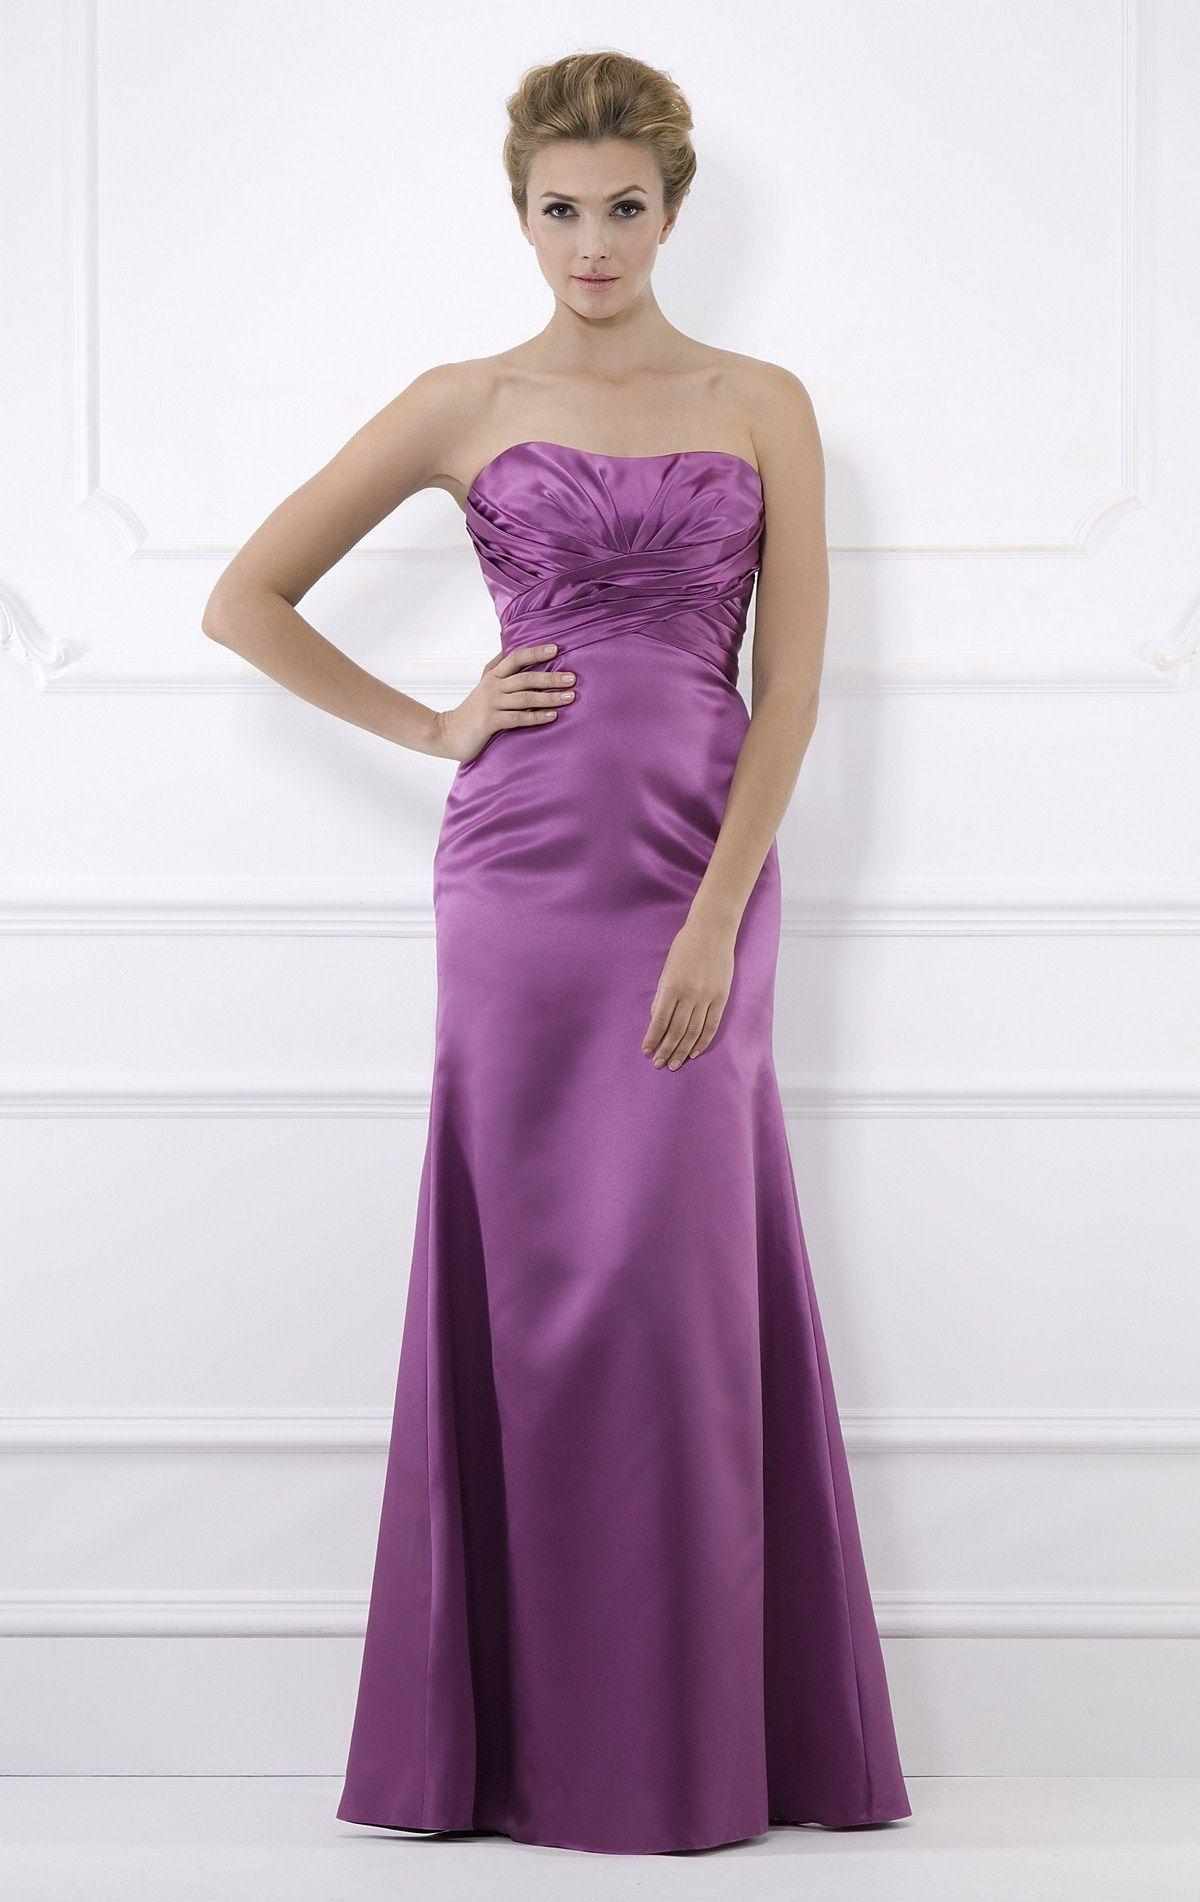 Images of bridesmaids outfits cool style strapless ruffled cool style strapless ruffled bridesmaid dresses on salecool style strapless ruffled bridesmaid dresses ukcool style strapless ruffled bridesmaid dresses ombrellifo Image collections